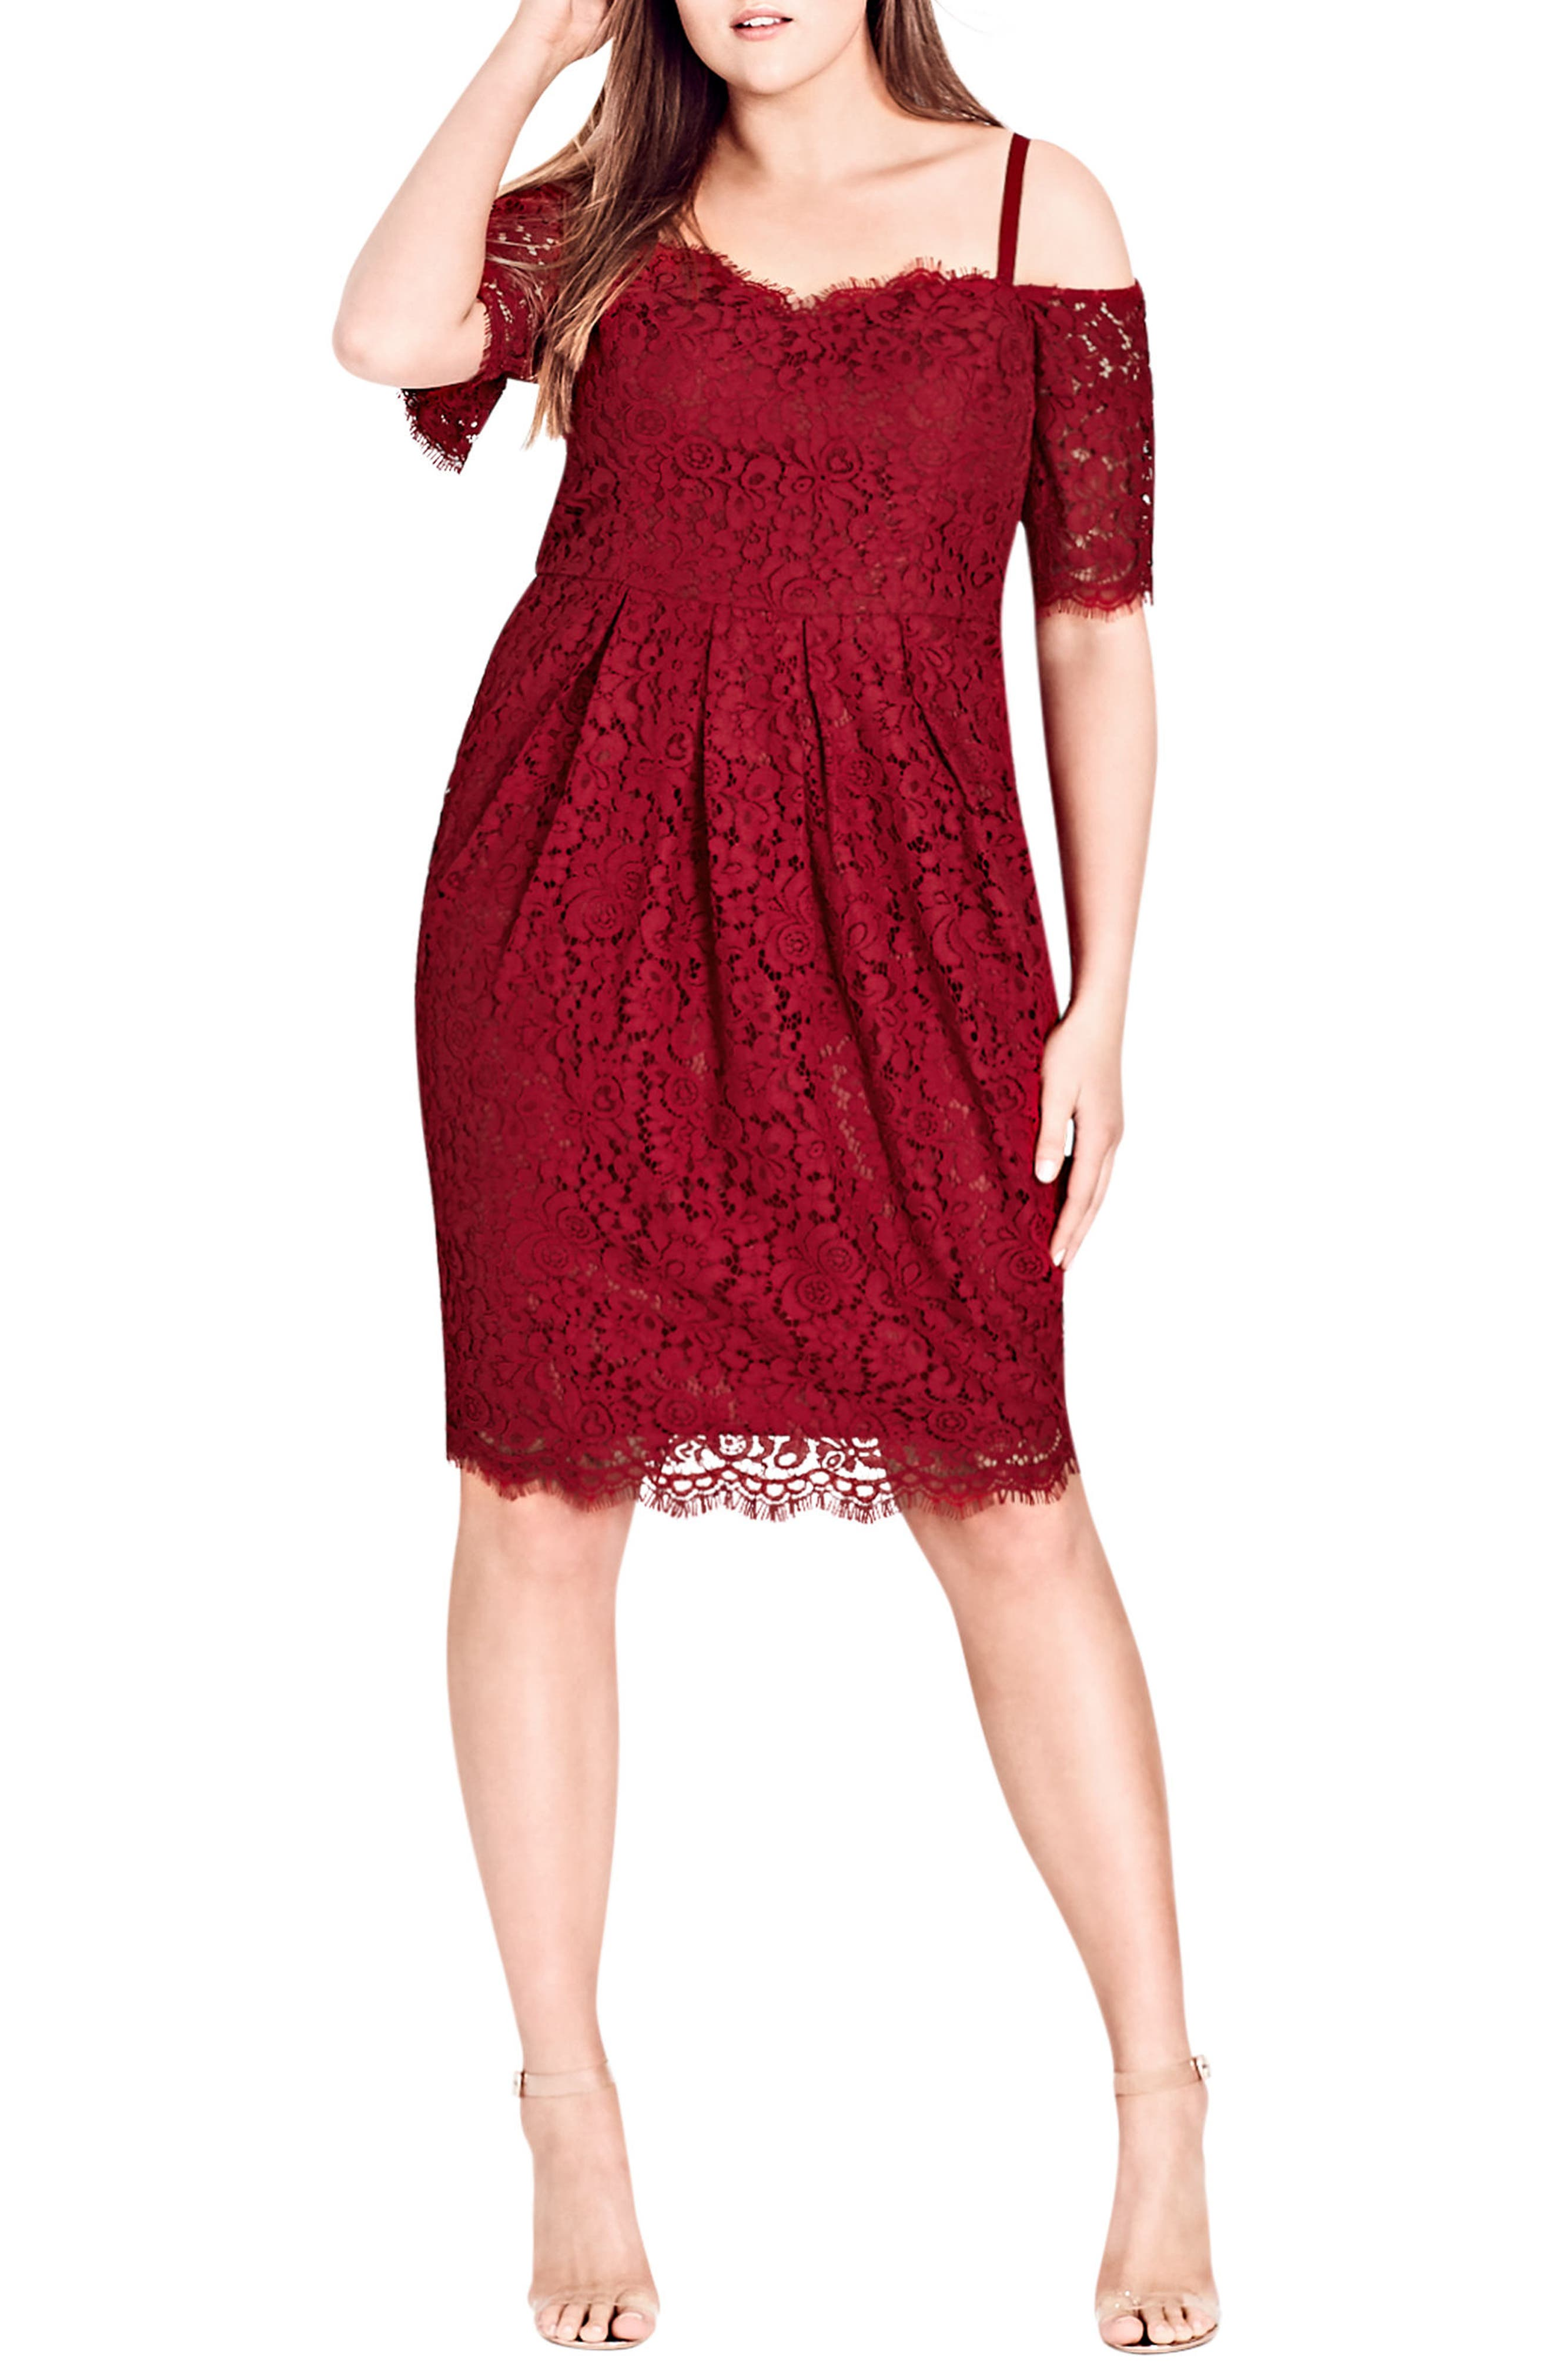 Alternate Image 1 Selected - City Chic Amour Off the Shoulder Lace Sheath Dress (Plus Size)